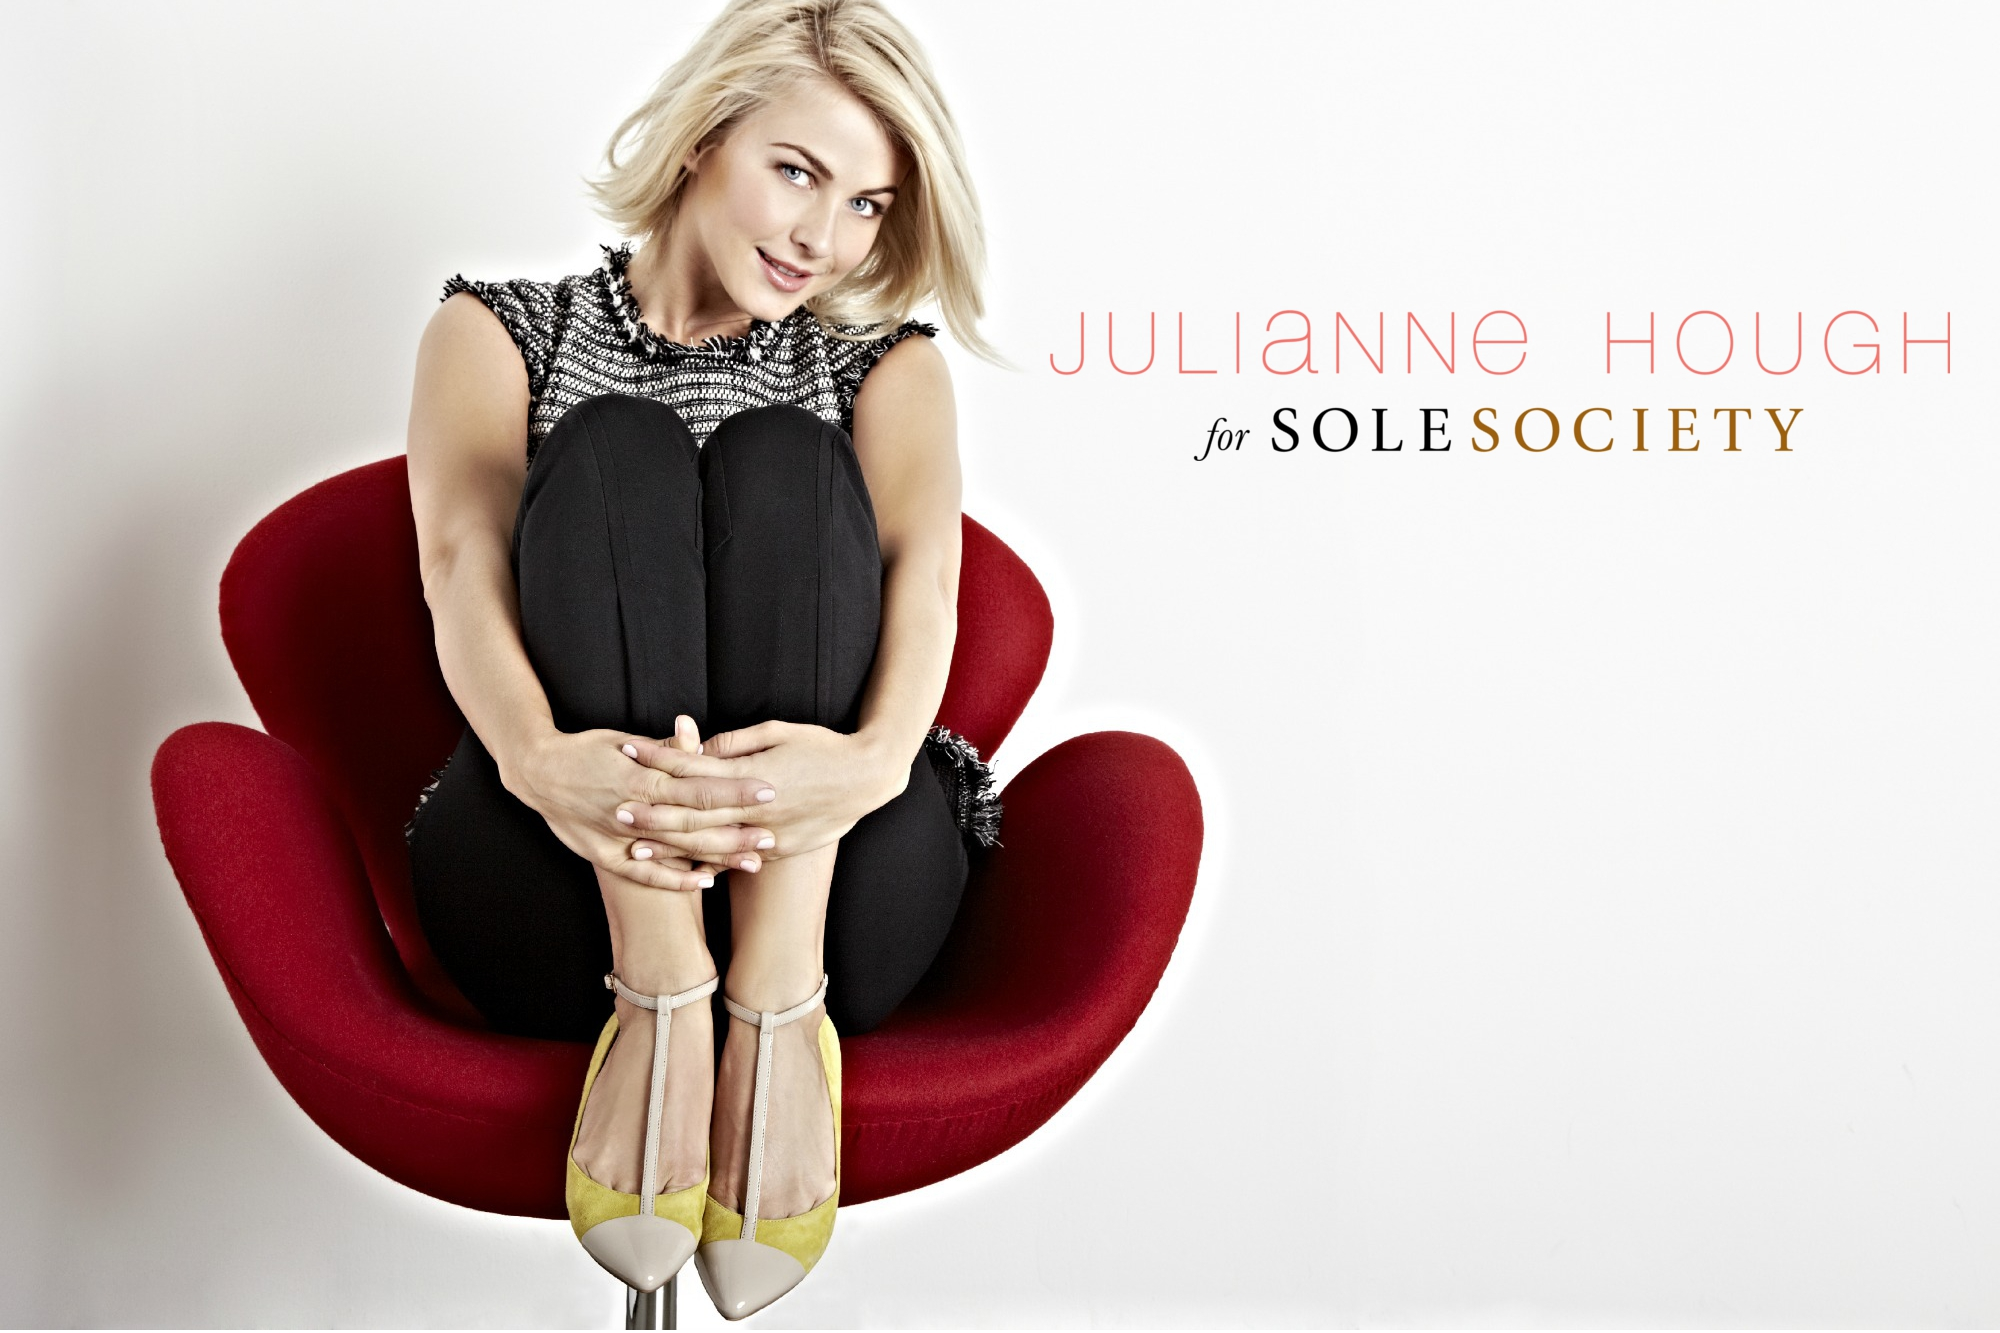 3cd32322960 Julianne Hough for Sole Society  Shoe giveaway!  - Savvy Sassy Moms